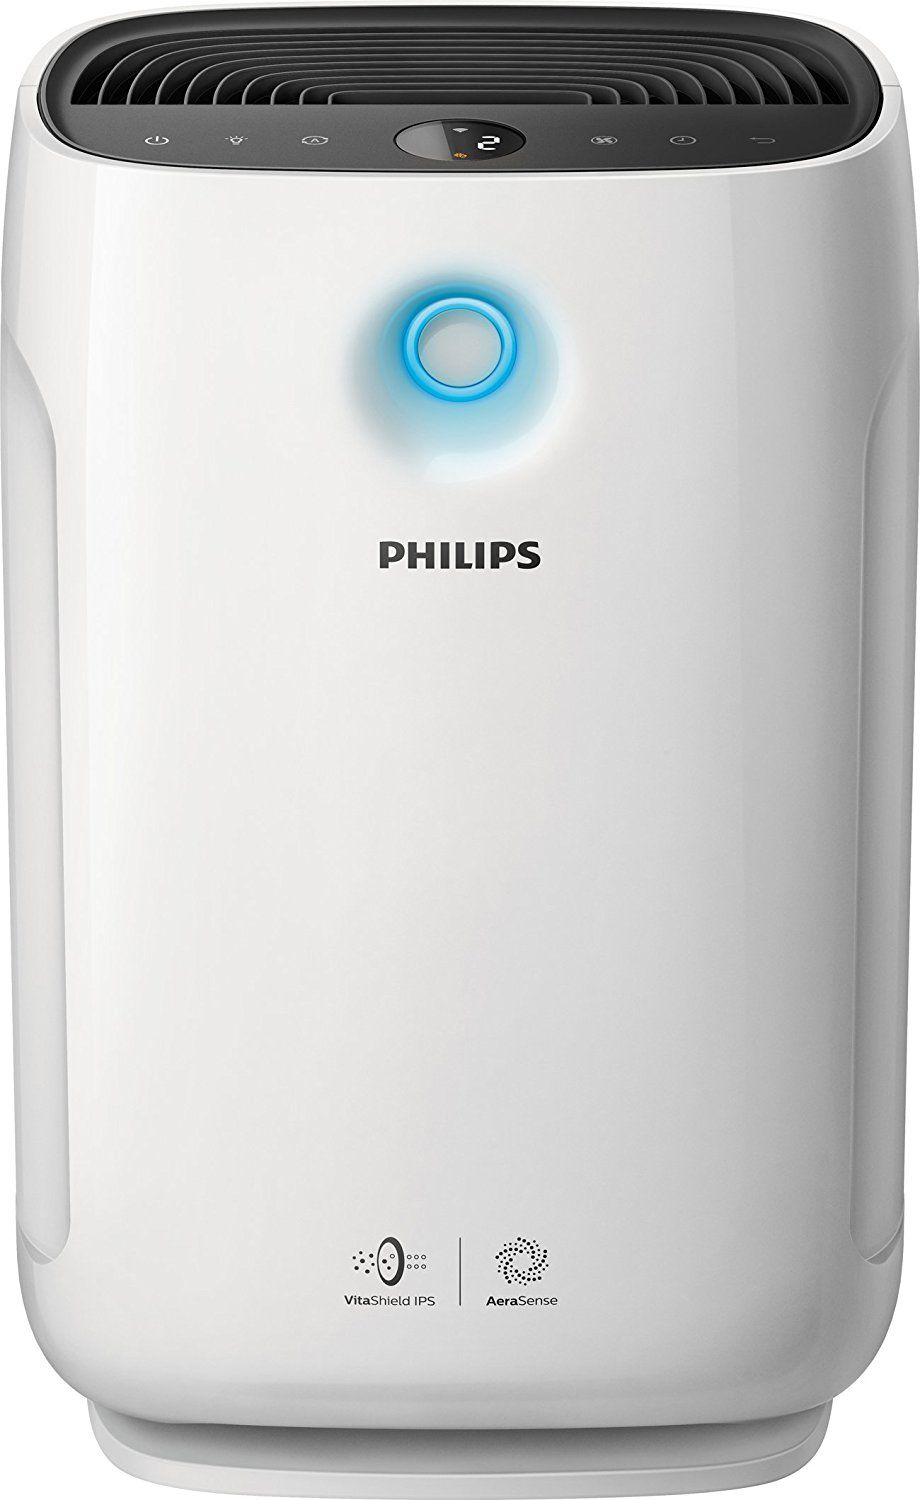 Philips air purifier is one of great buying guide to